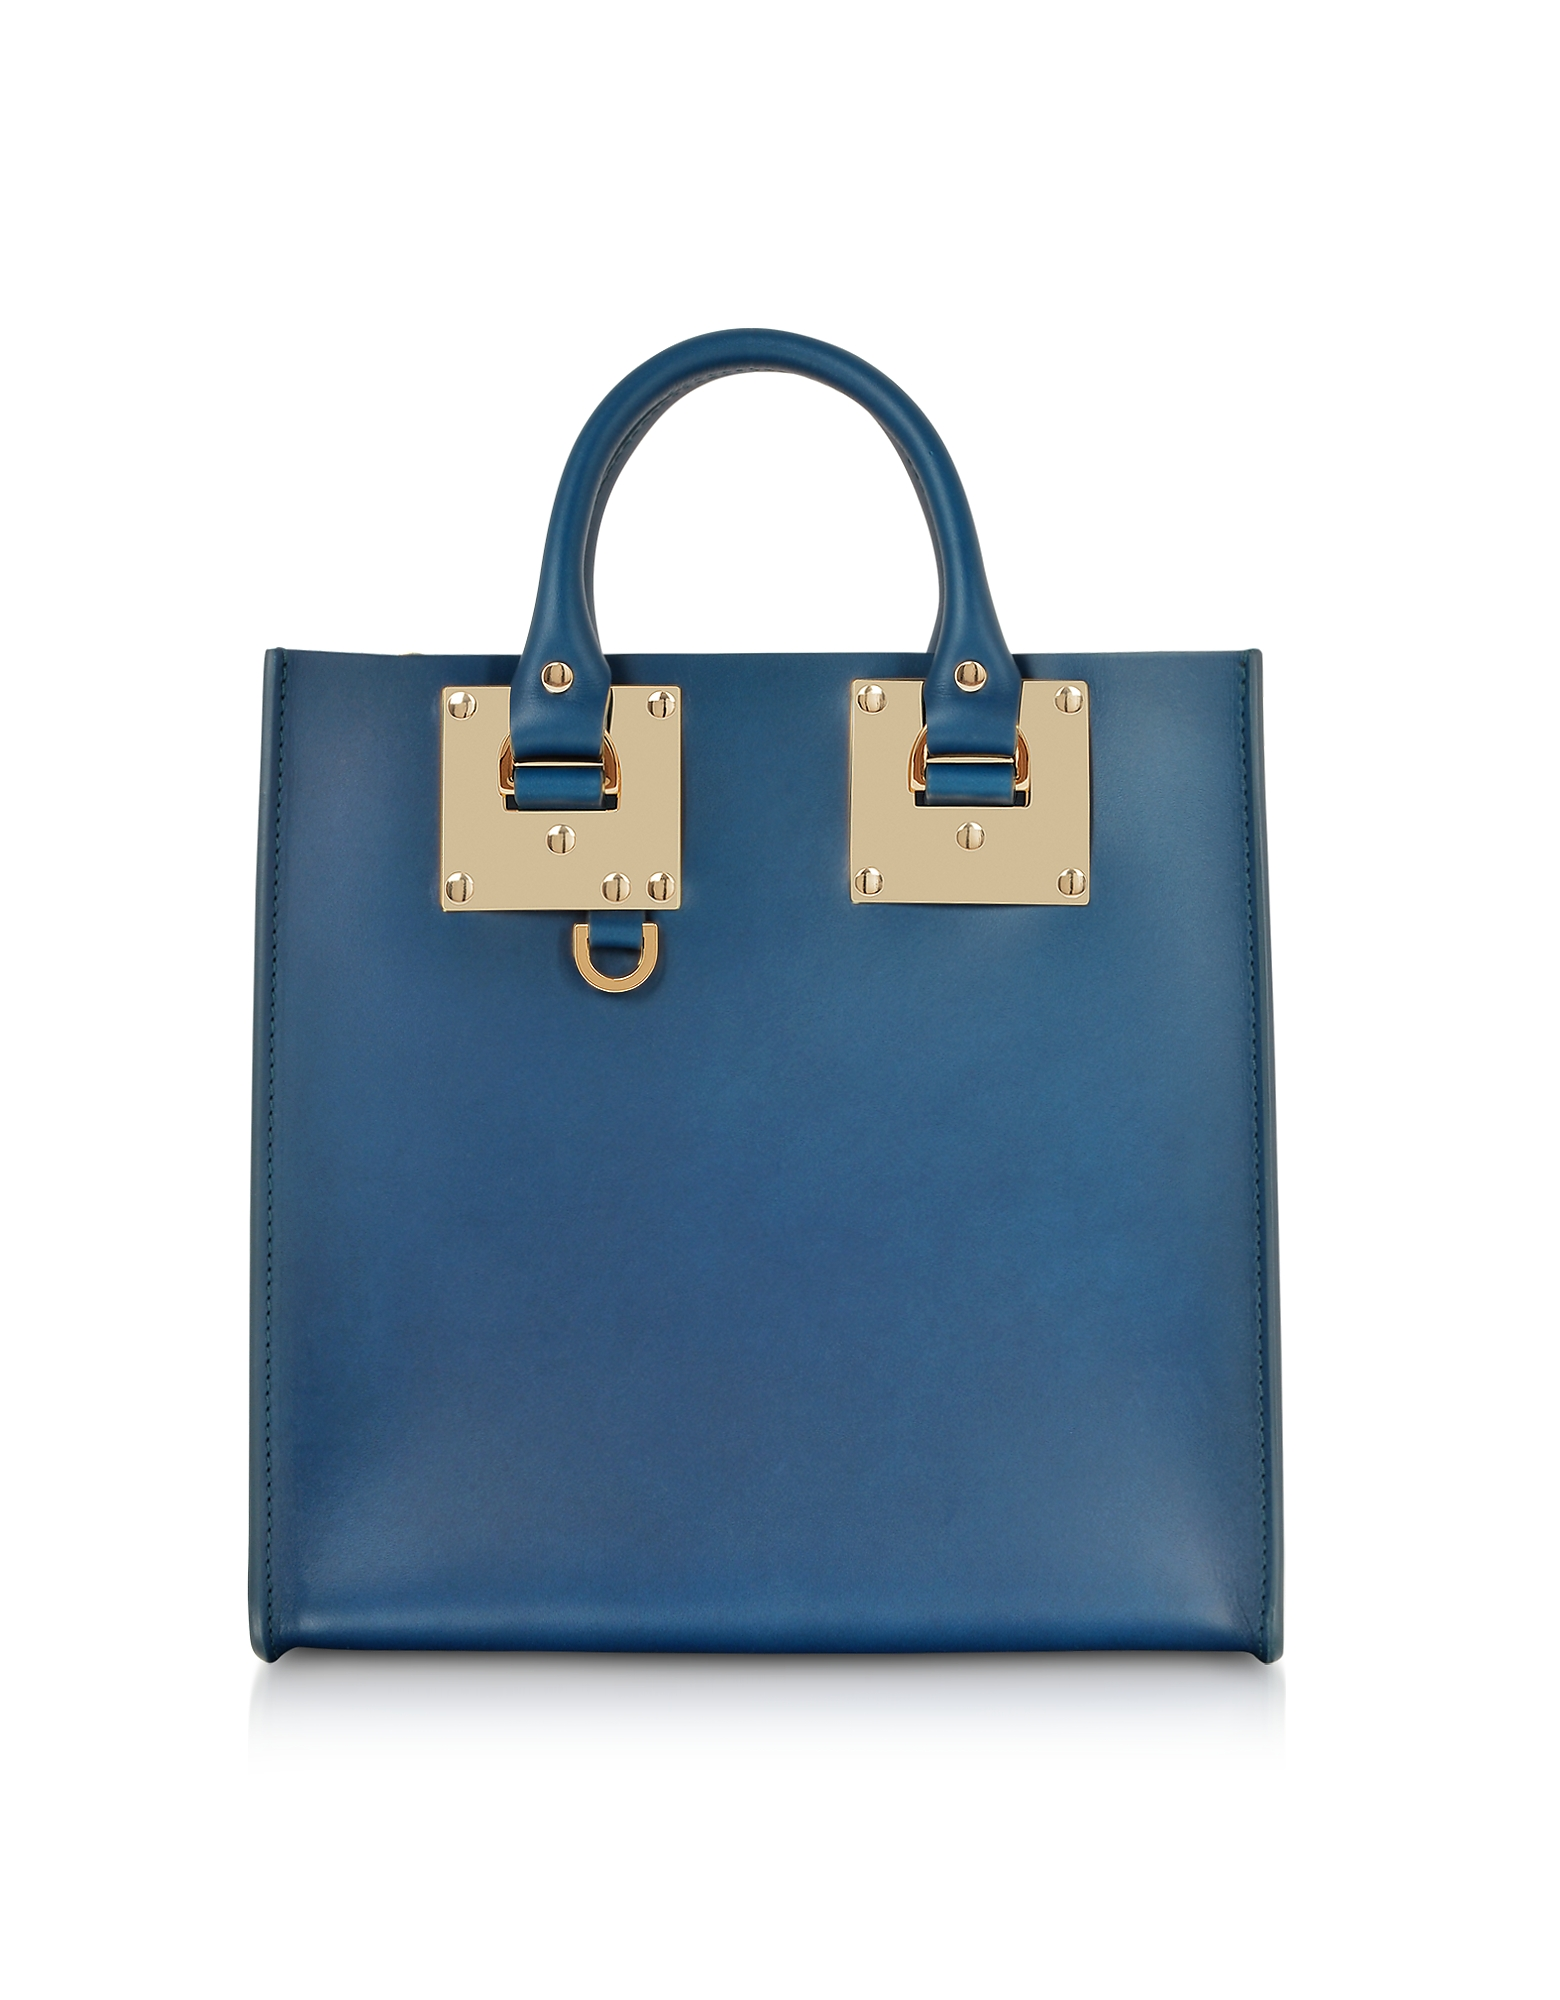 Albion Square Tote in Pelle Blue Canard